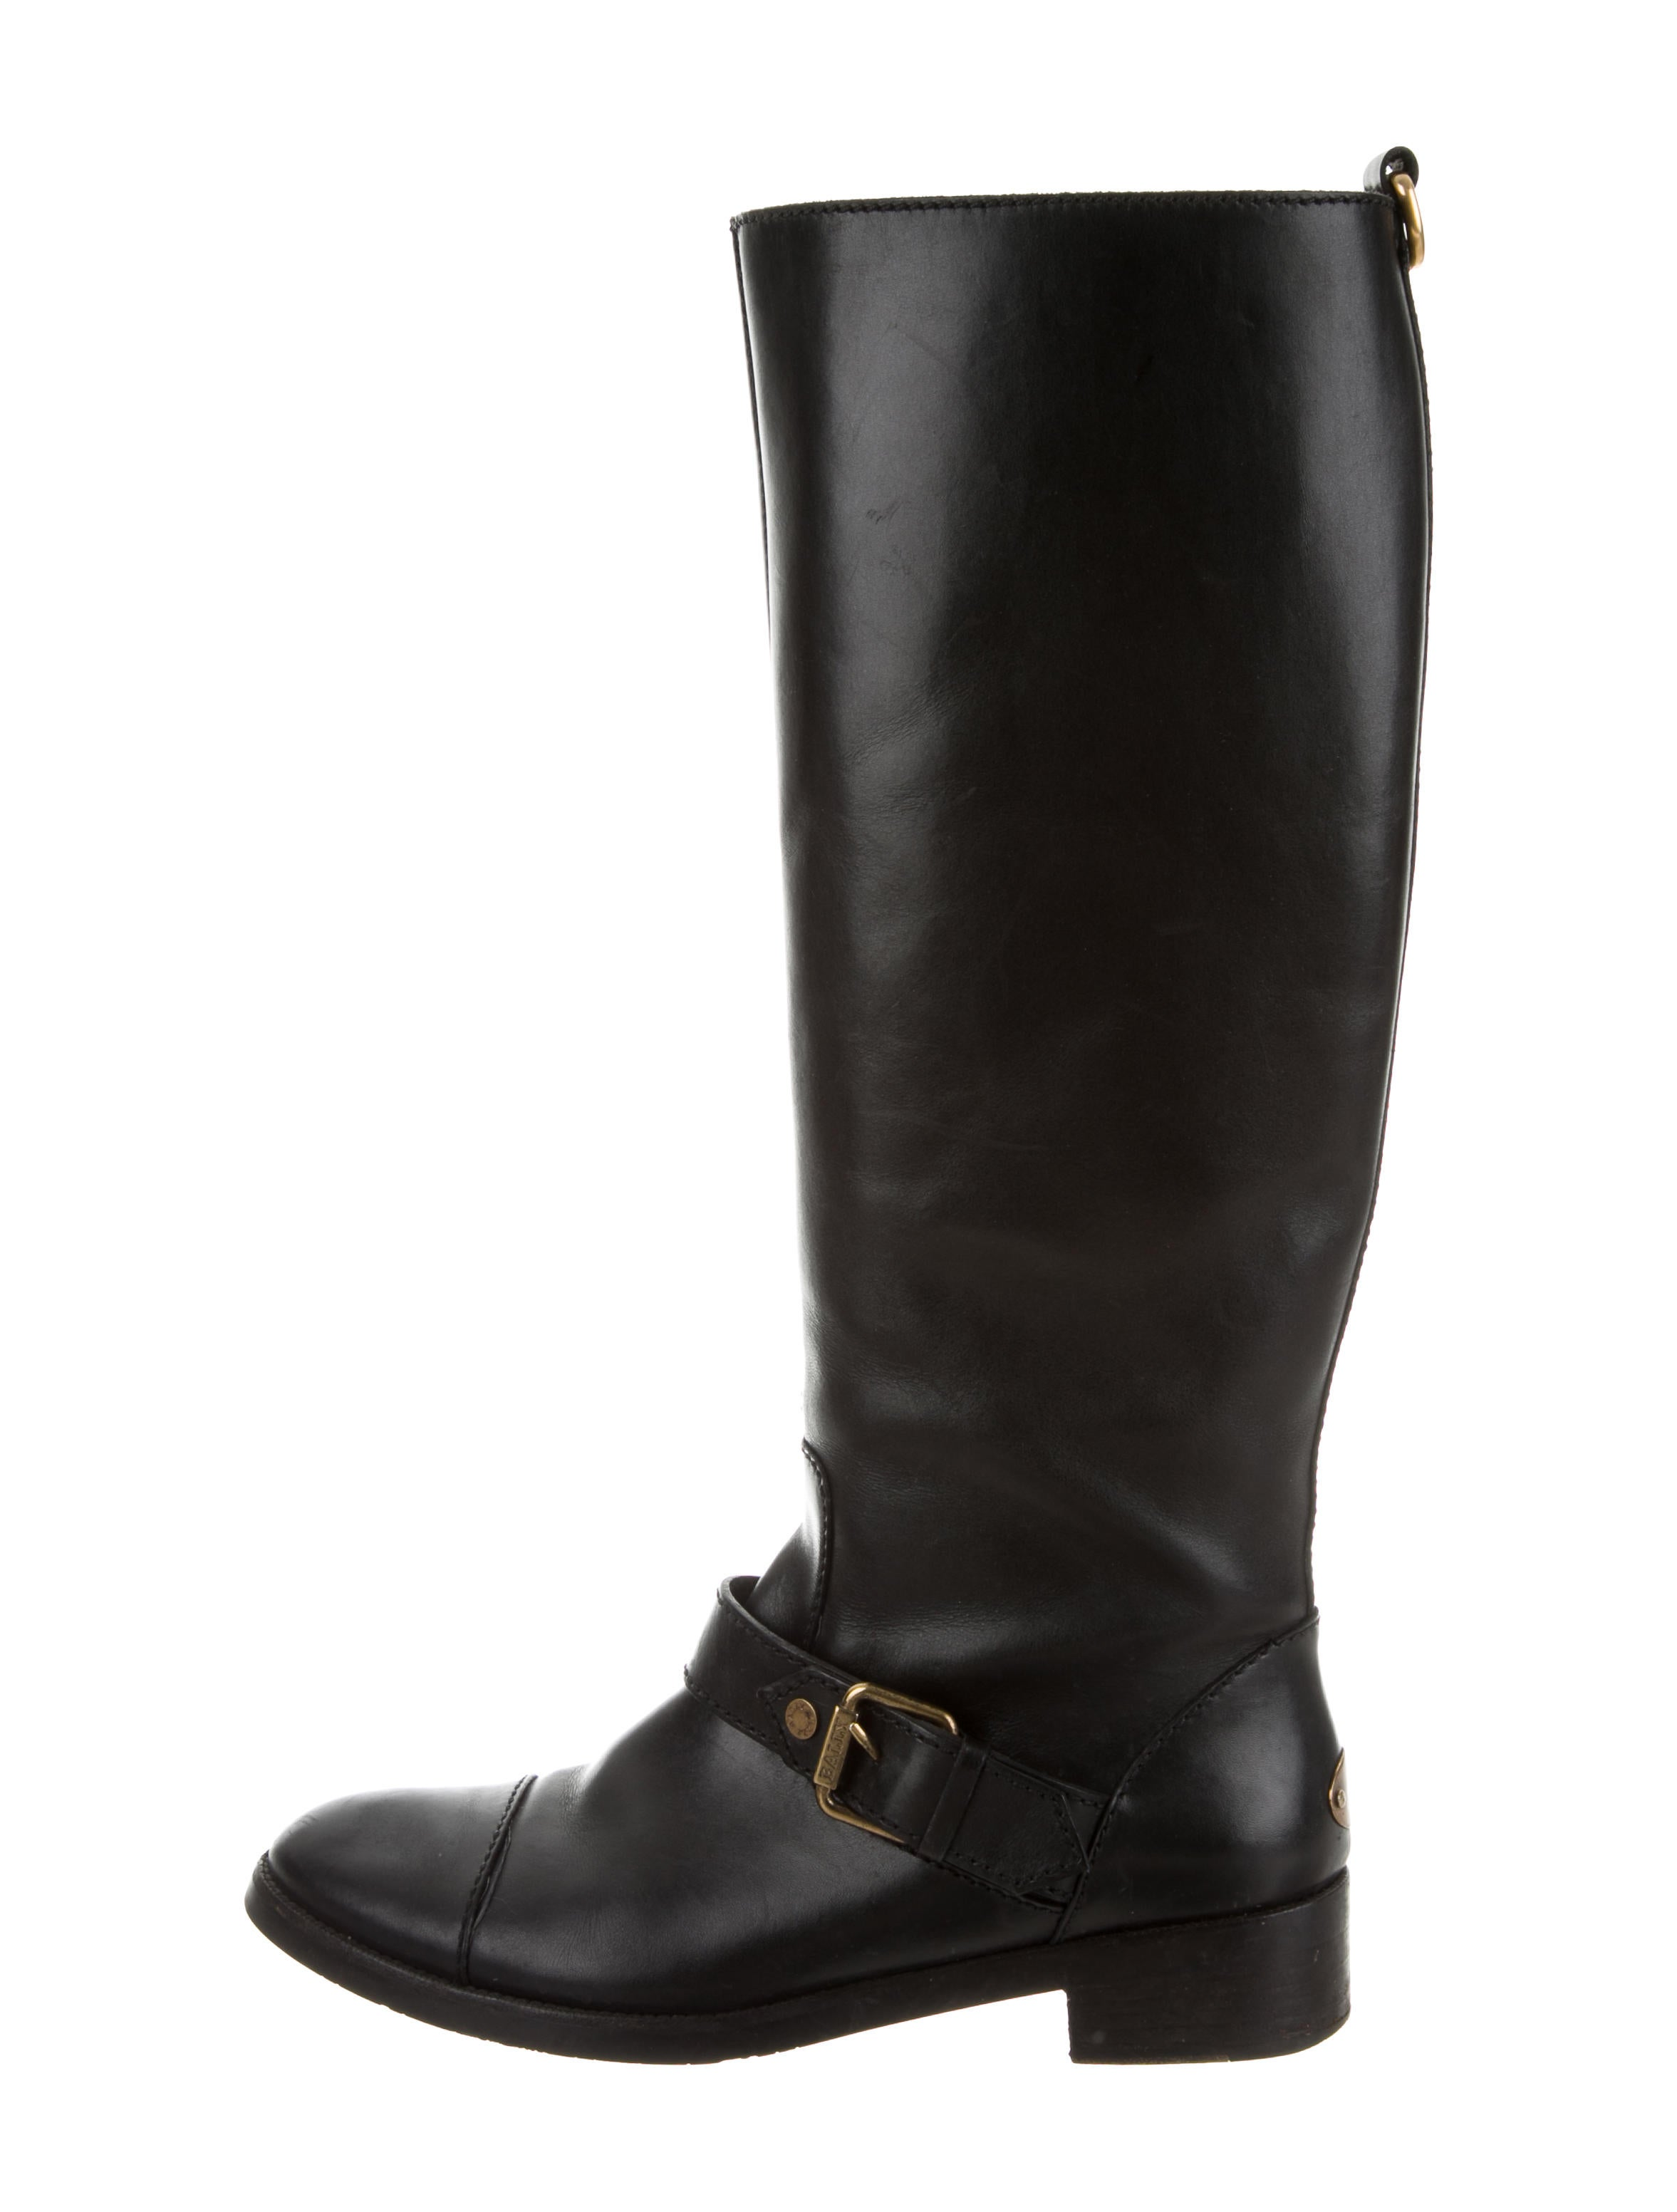 cheap new Bally Cap-Toe Riding Boots cheap price store NCOIxCT3t